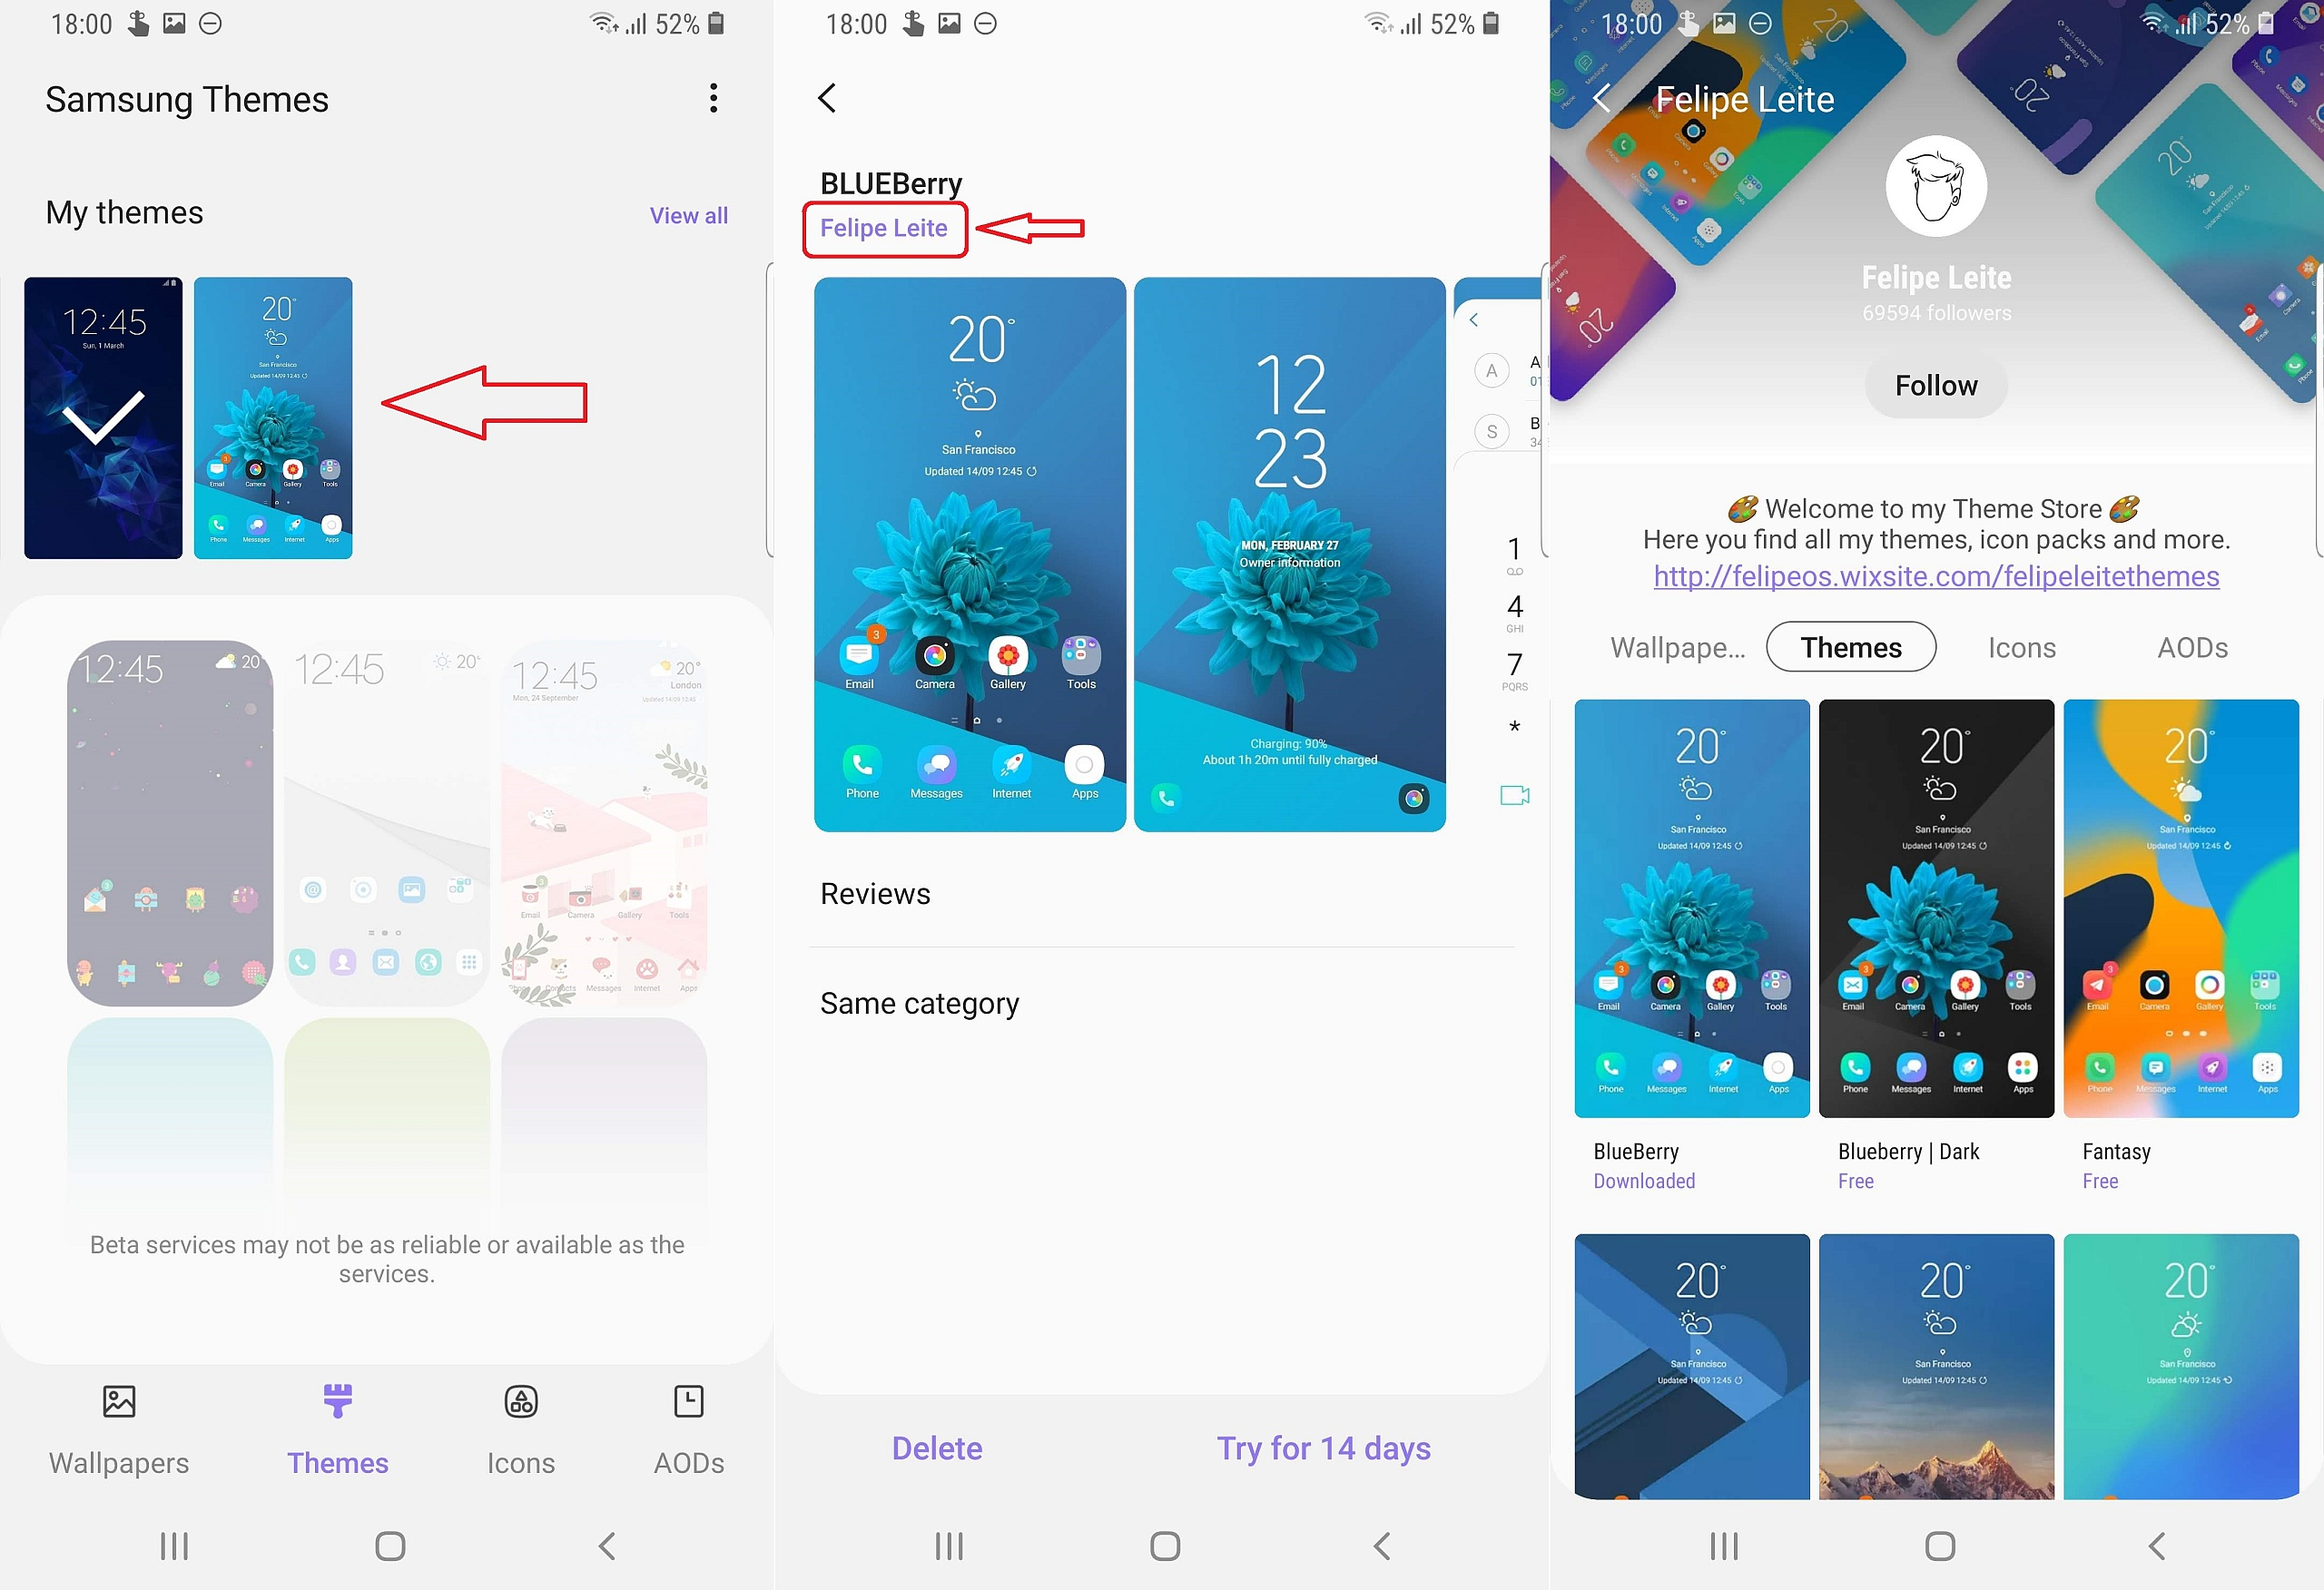 Here's a hack to change icons and themes on Galaxy S9 Android Pie